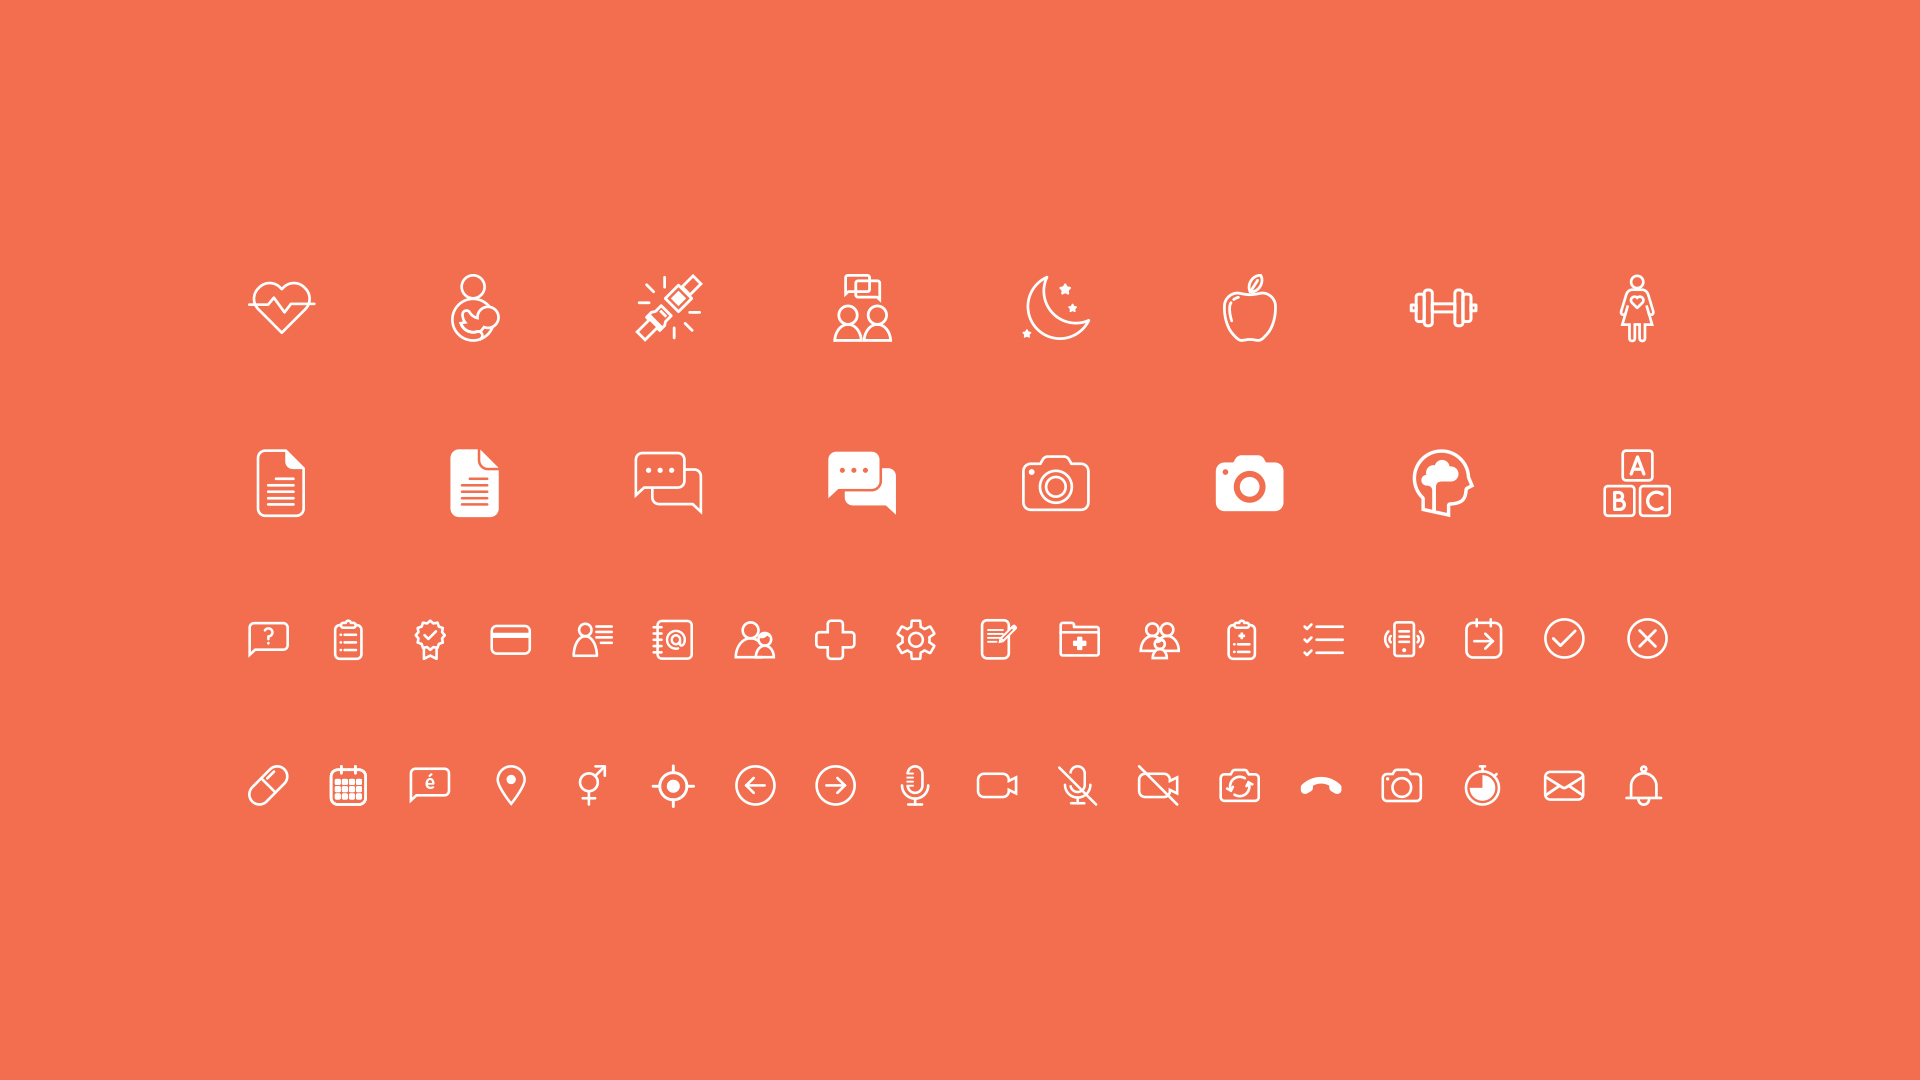 DANG_Huddle_icons2_orange